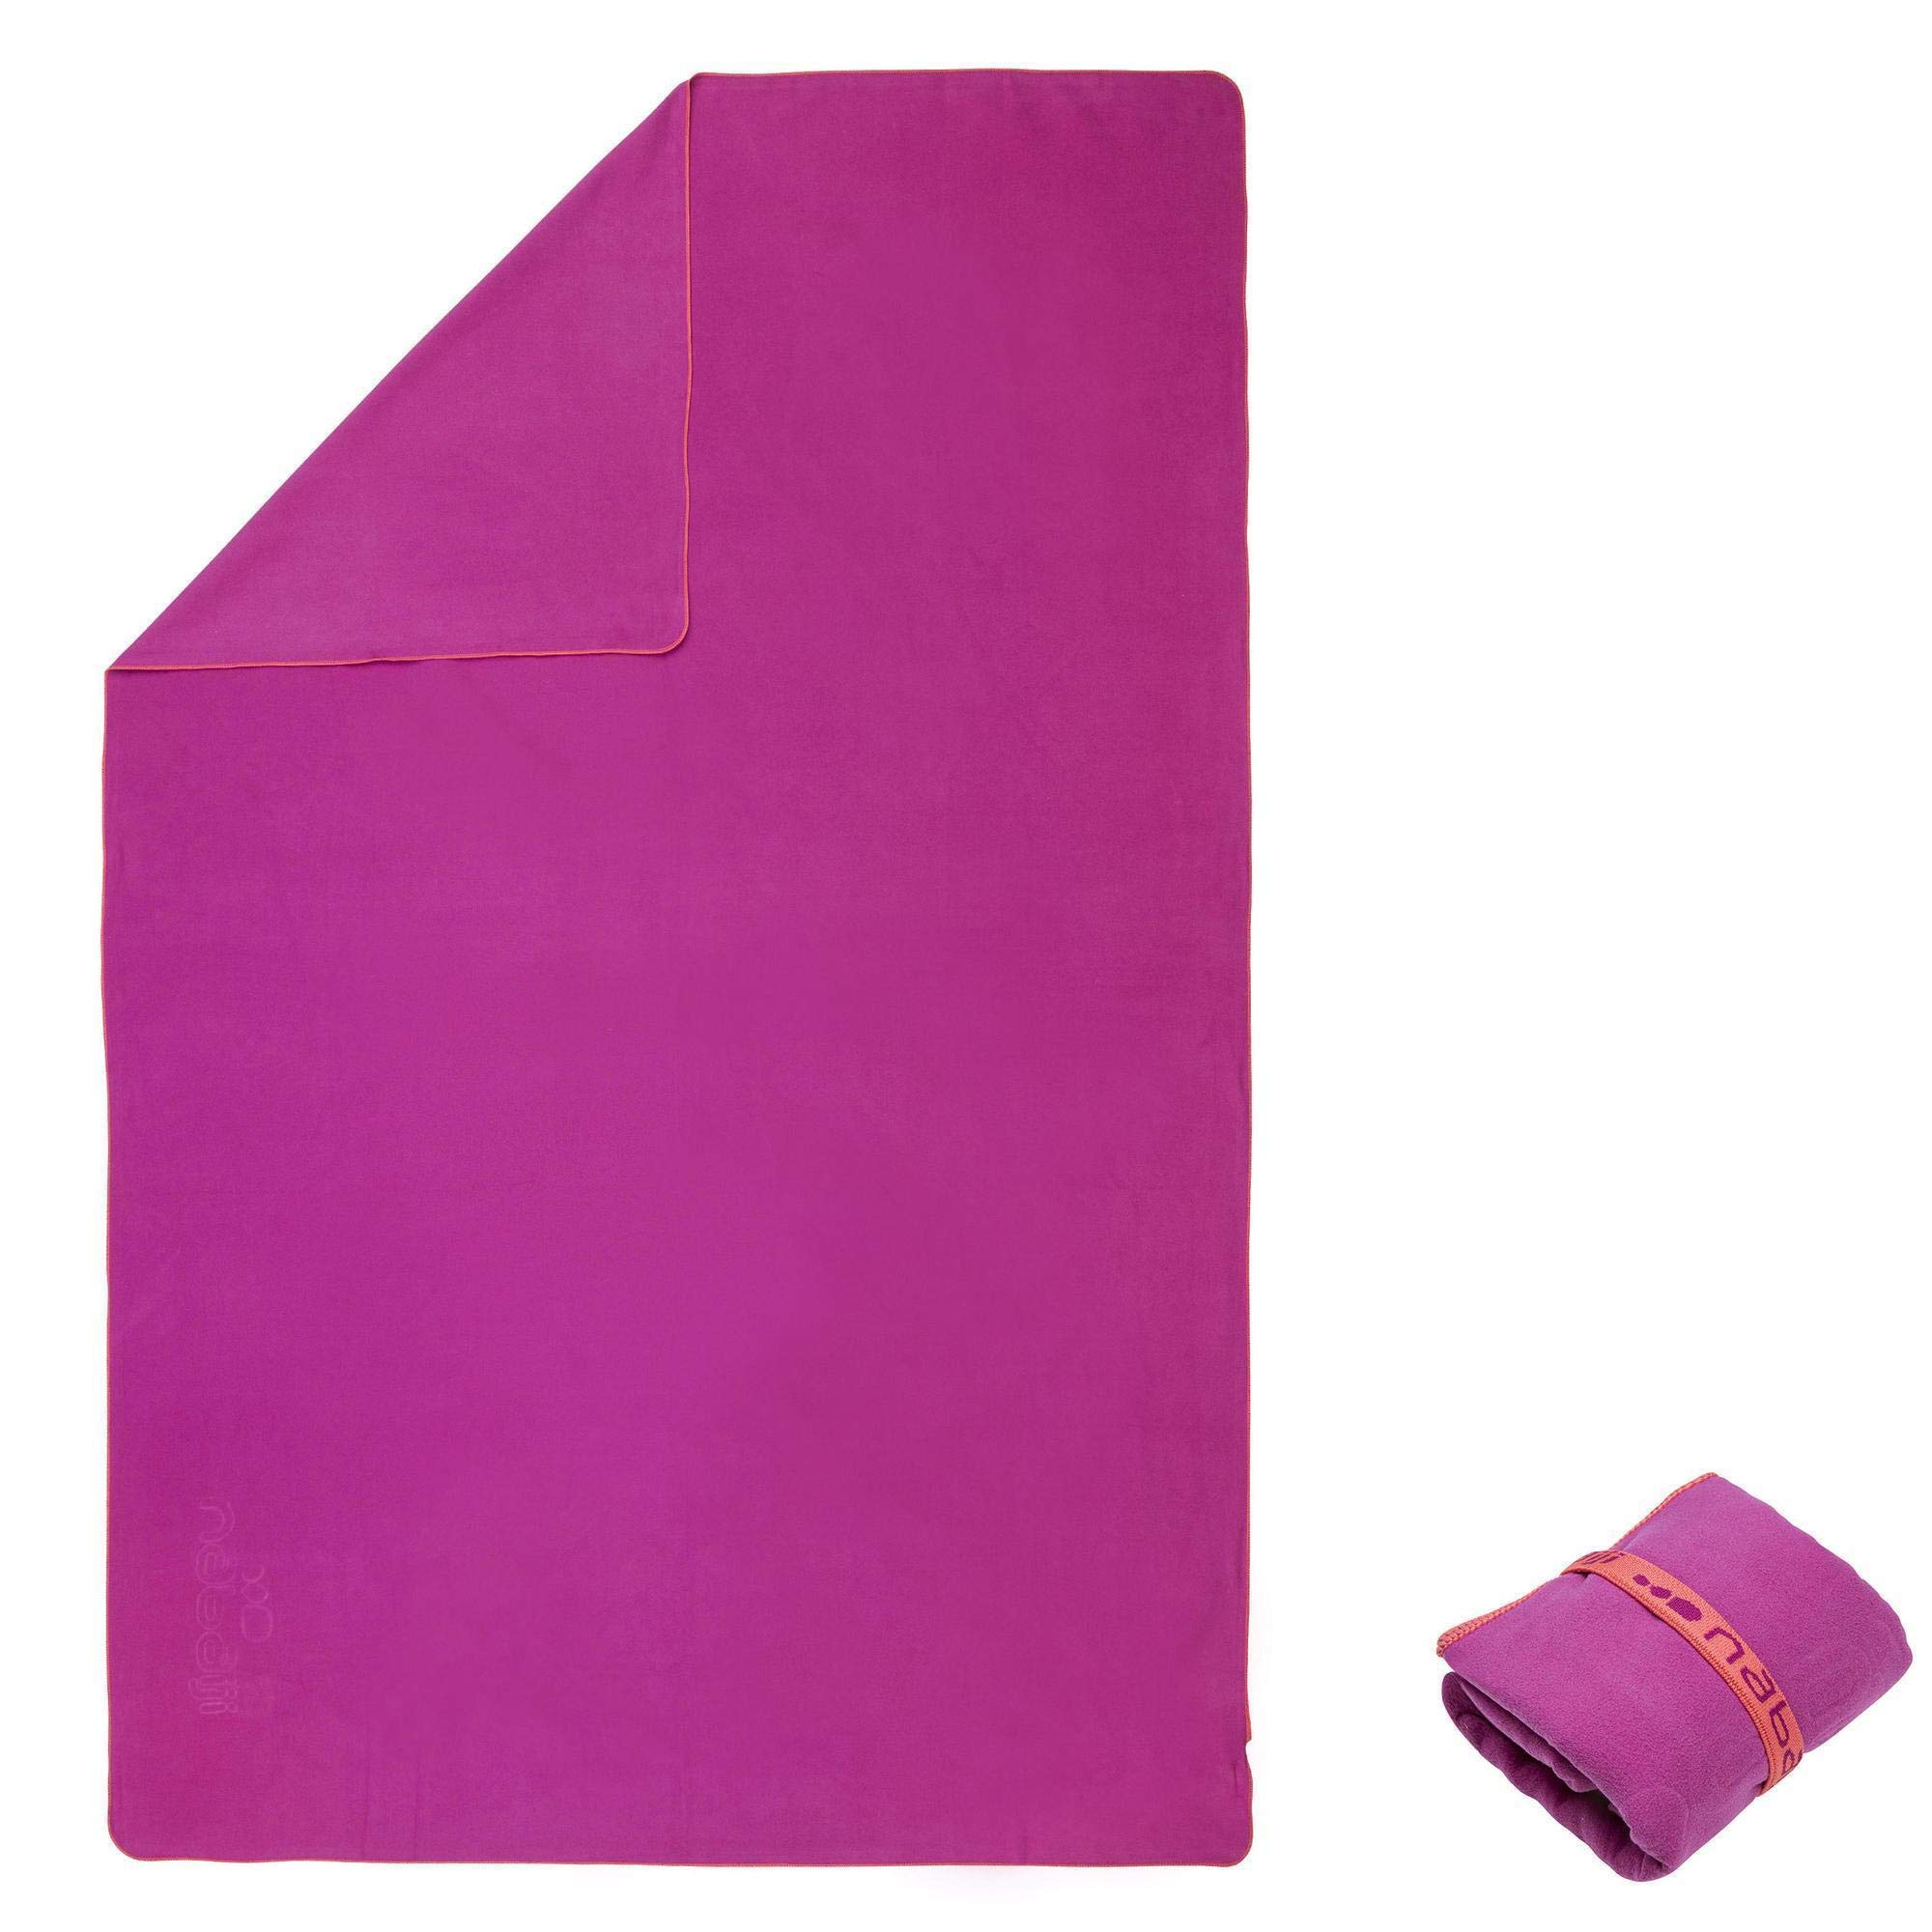 Nabaiji Sports Traveling Swimming Hiking Quick Dry Towels Microfiber Ultra-Light Beach/Gym/Hand Super-Absorbent Towels (Purple, 80cm x 130cm) by X-Sports